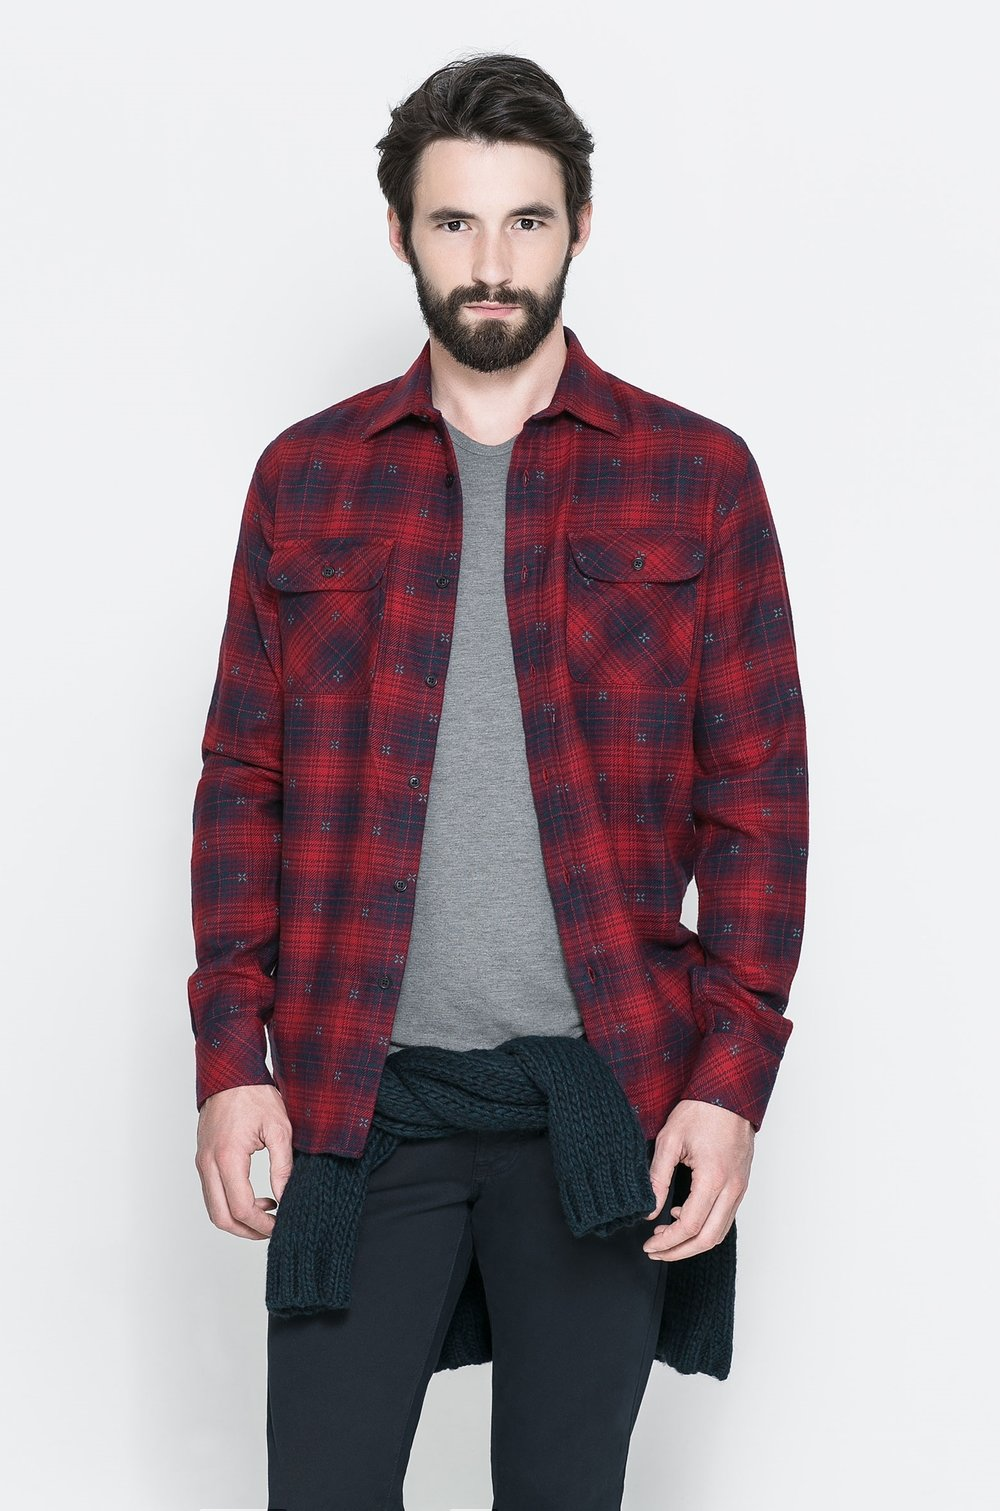 zara-red-printed-flannel-shirt-product-1-14518558-355033738.jpg